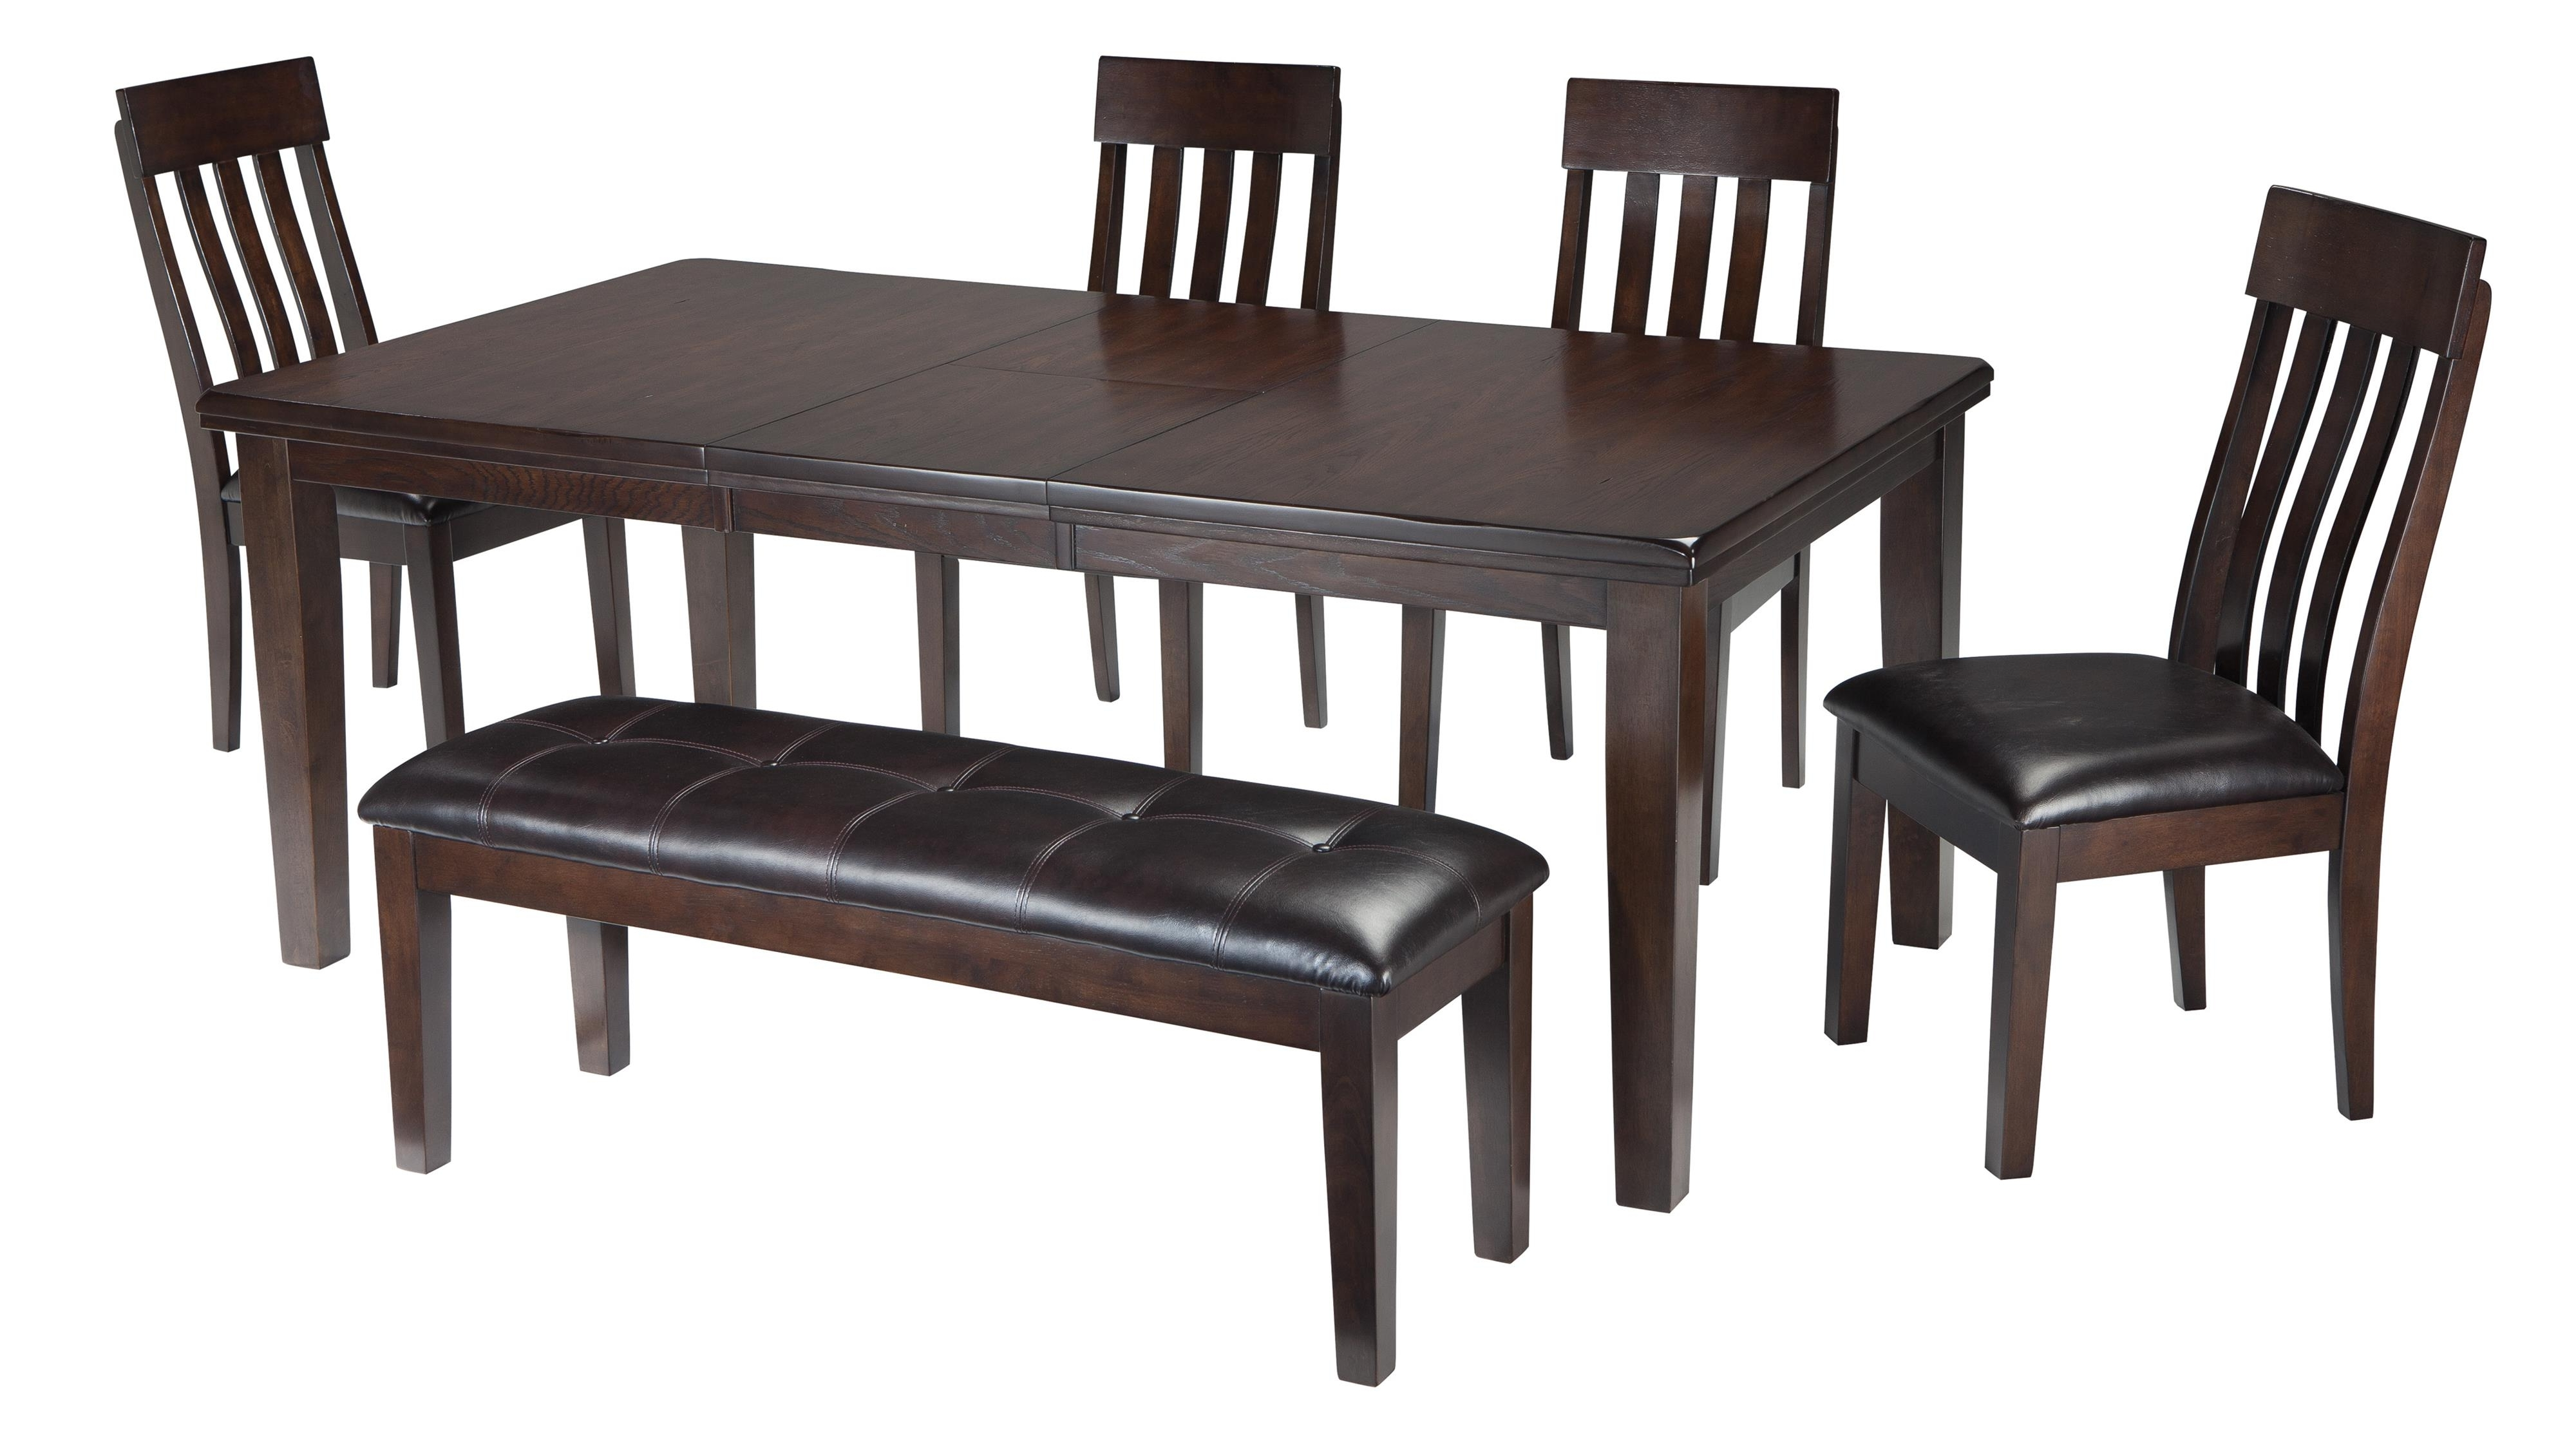 Well Liked Jaxon 5 Piece Extension Round Dining Sets With Wood Chairs In Signature Designashley Haddigan 6 Piece Rectangular Dining Room (View 9 of 25)